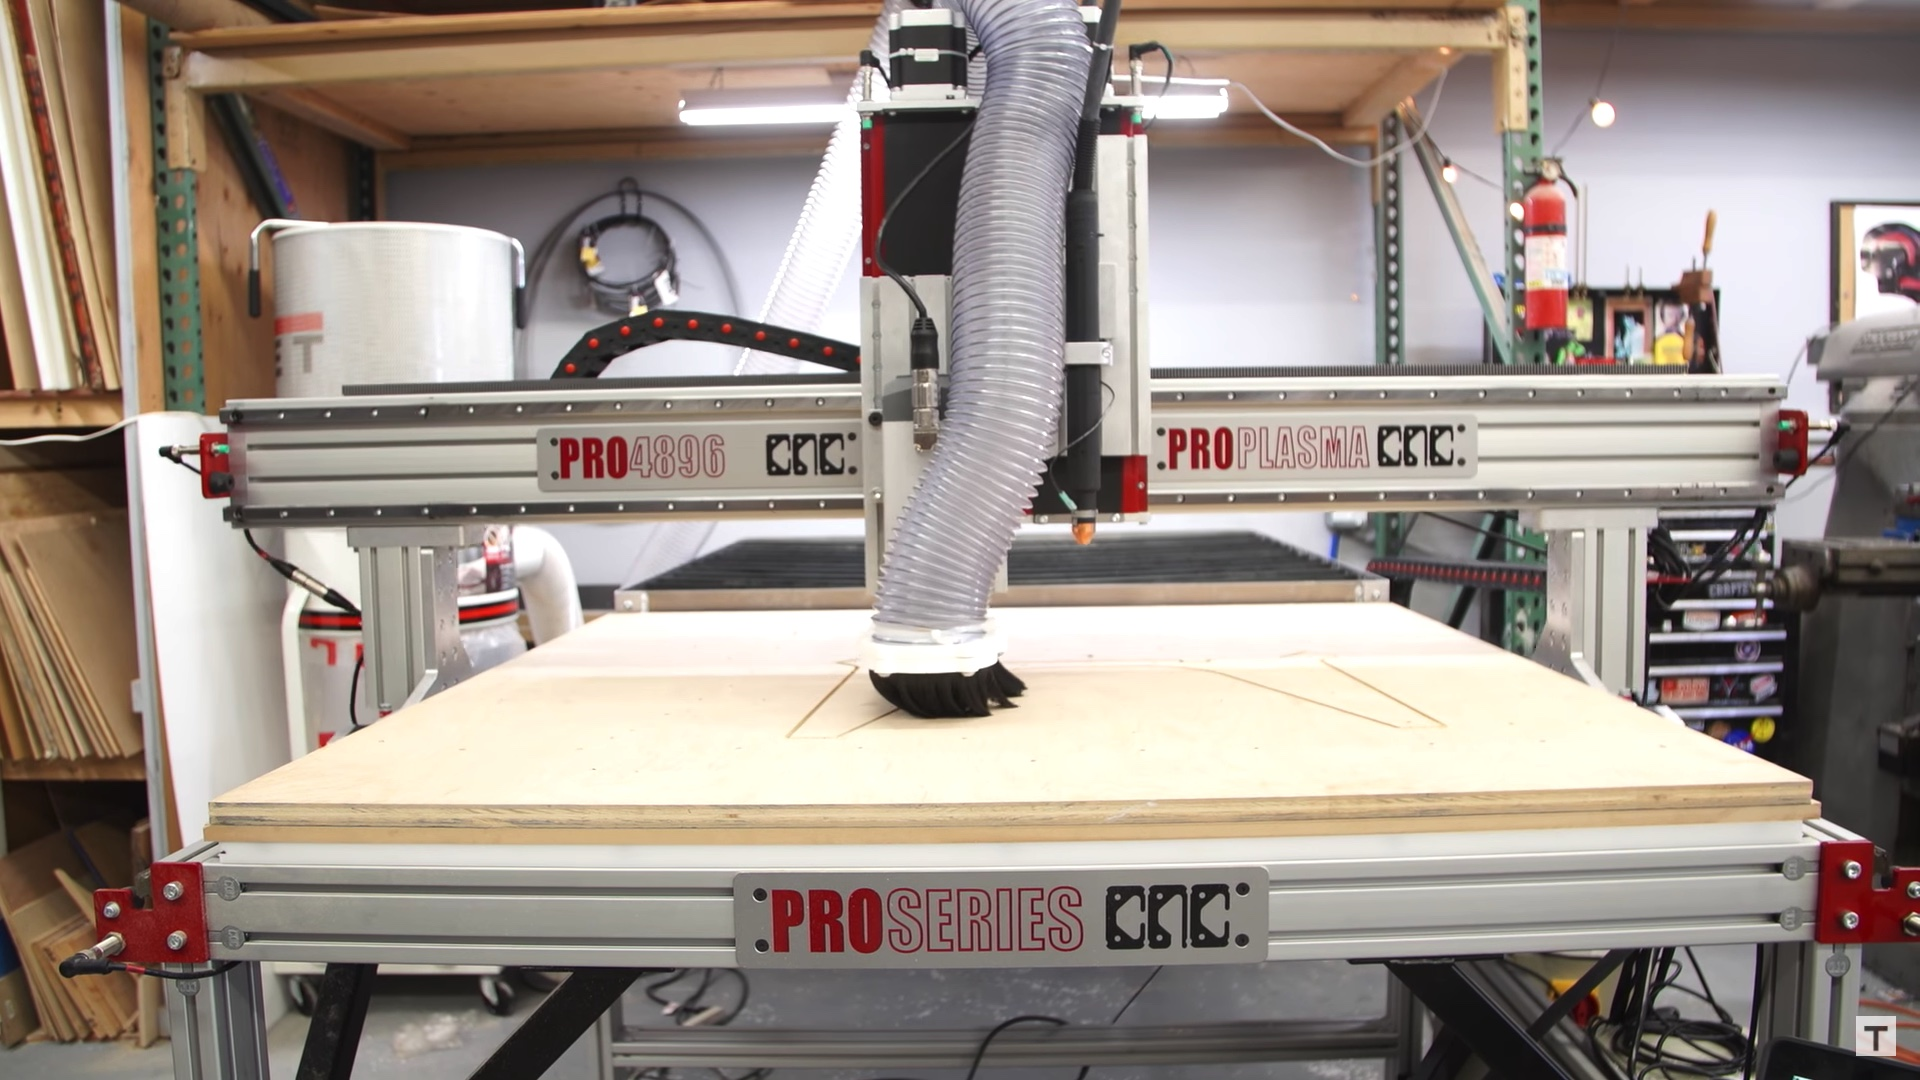 Tested Pro4896 Cnc Router Plasma Combo Machine